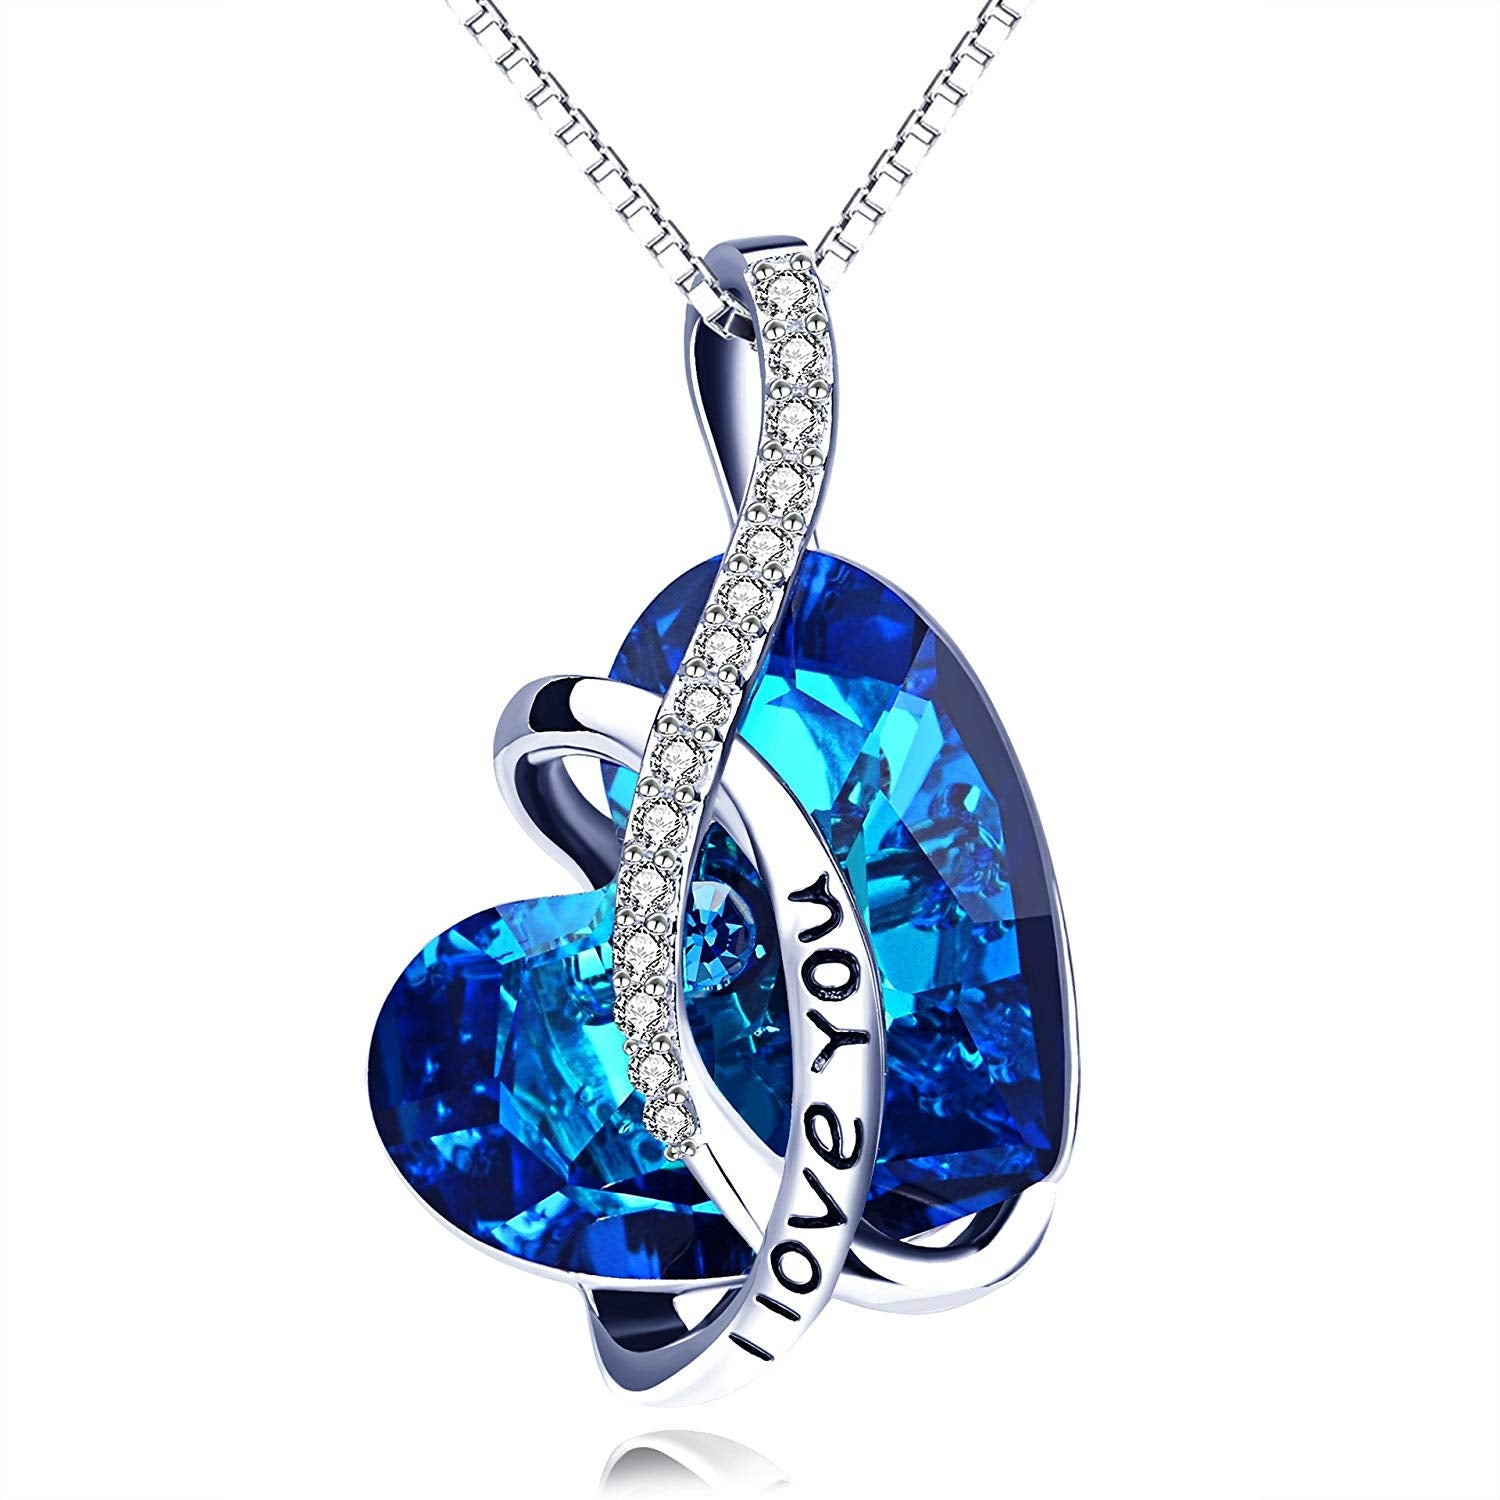 I Love You Sterling Silver Heart Pendant Necklace with Swarovski Crystals Jewelry for Women